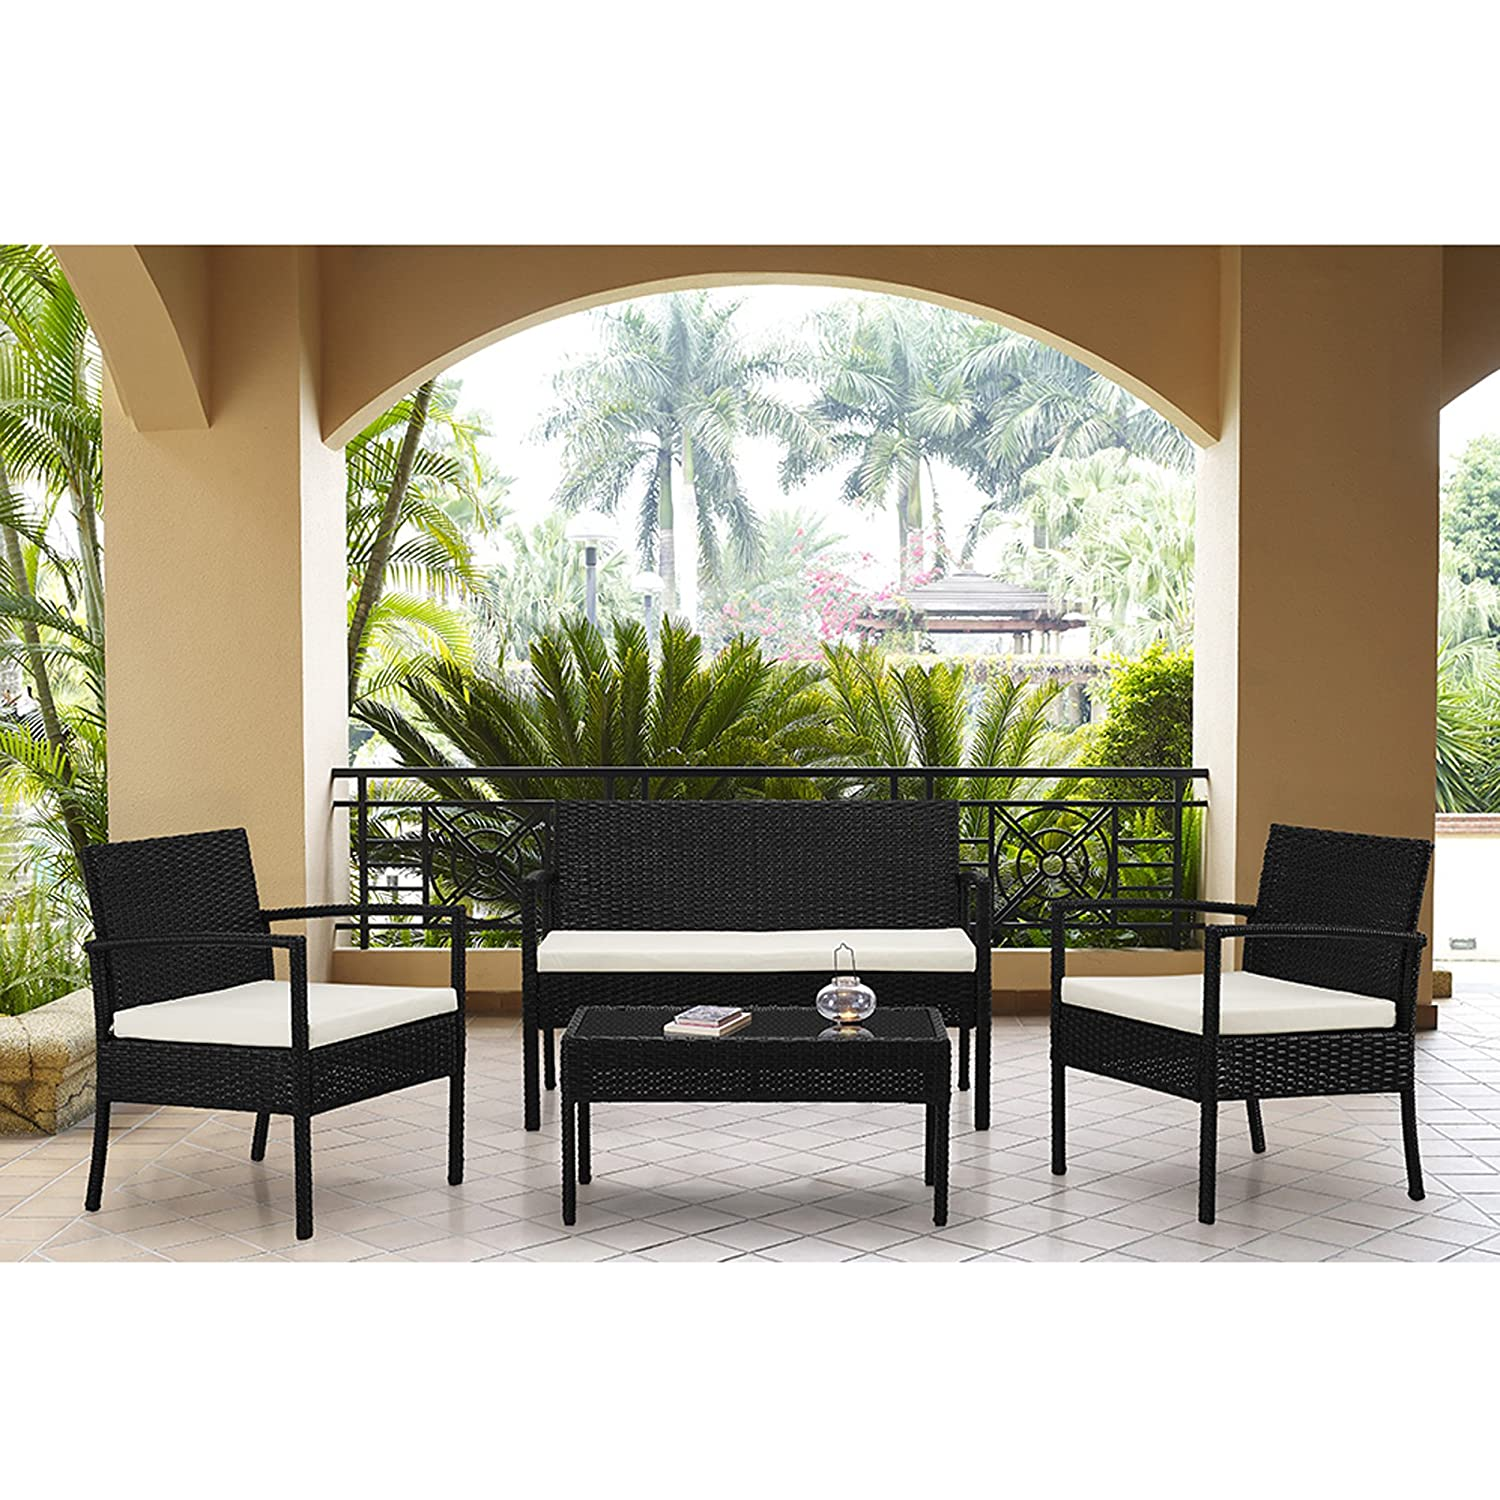 Amazon.com : Rattan Wicker Patio Sofa Dining Table Set 4 Piece Balcony  Outdoor Garden Pool Furniture Set White Cushioned Seat Black : Patio, Lawn  U0026 Garden